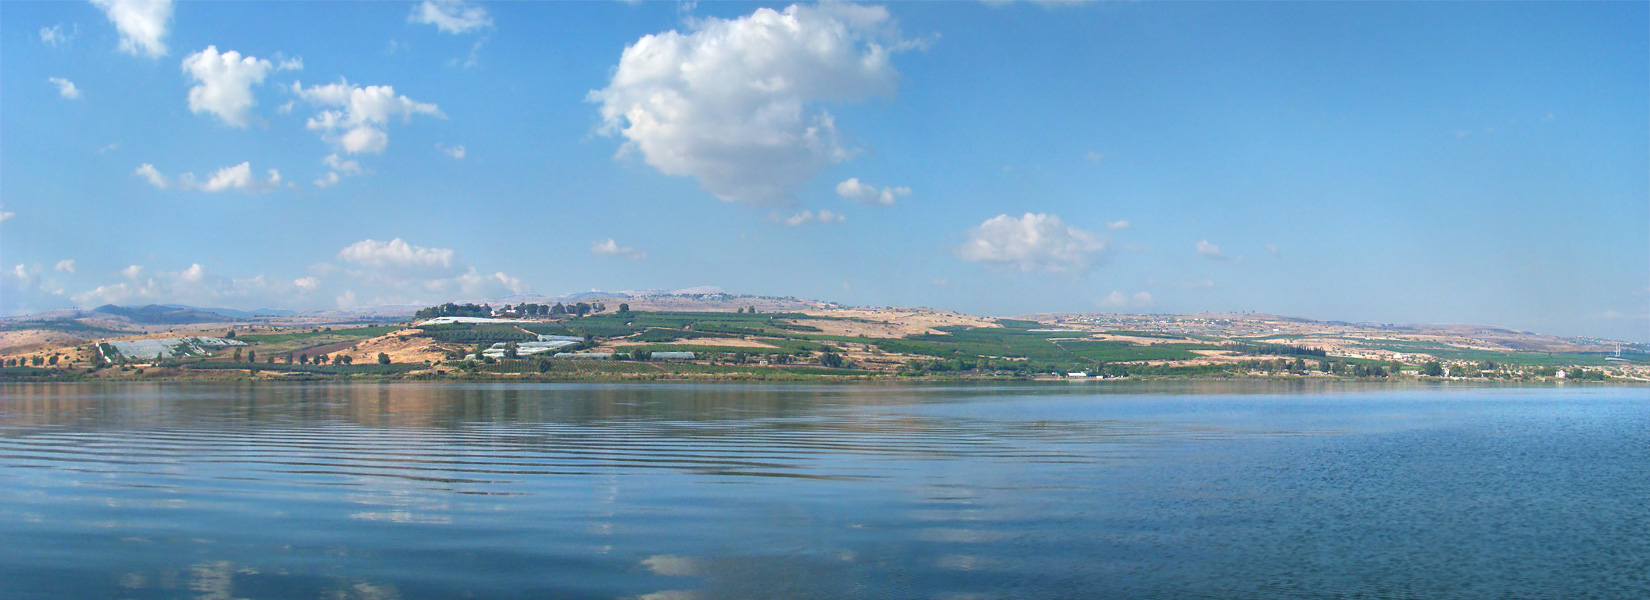 Israel Tiberias taken in 2012 by tango7174 shared under a CreativeCommons licence